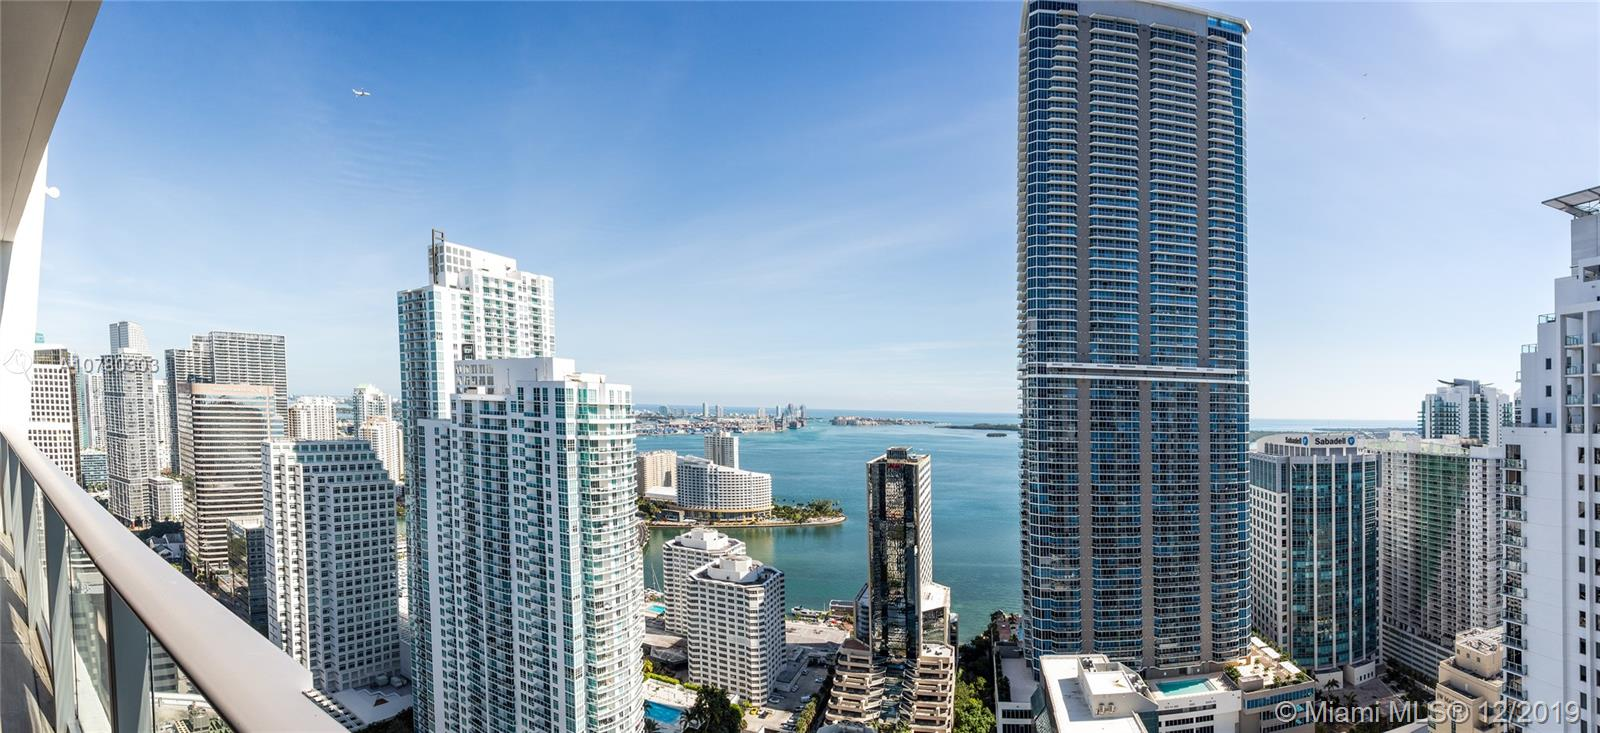 Best unit for sale at 1010 Brickell. Beautifully & professionally designed 2 Bed, 3 Bad + Den. Private elevator  move-in ready home in the sky. Direct views of the Biscayne Bay, Port of Miami, and South Beach. 1010 Brickell is one of the most complete and luxurious buildings in Miami. 3 entire floors full of amenities and entertainment, including a full SPA, double height ceiling GYM, Kids playground, squash, racquetball court, playroom with bowling alley, unbelievable roof top with full service restaurant / swimming pool, spa and an under the stars theater.